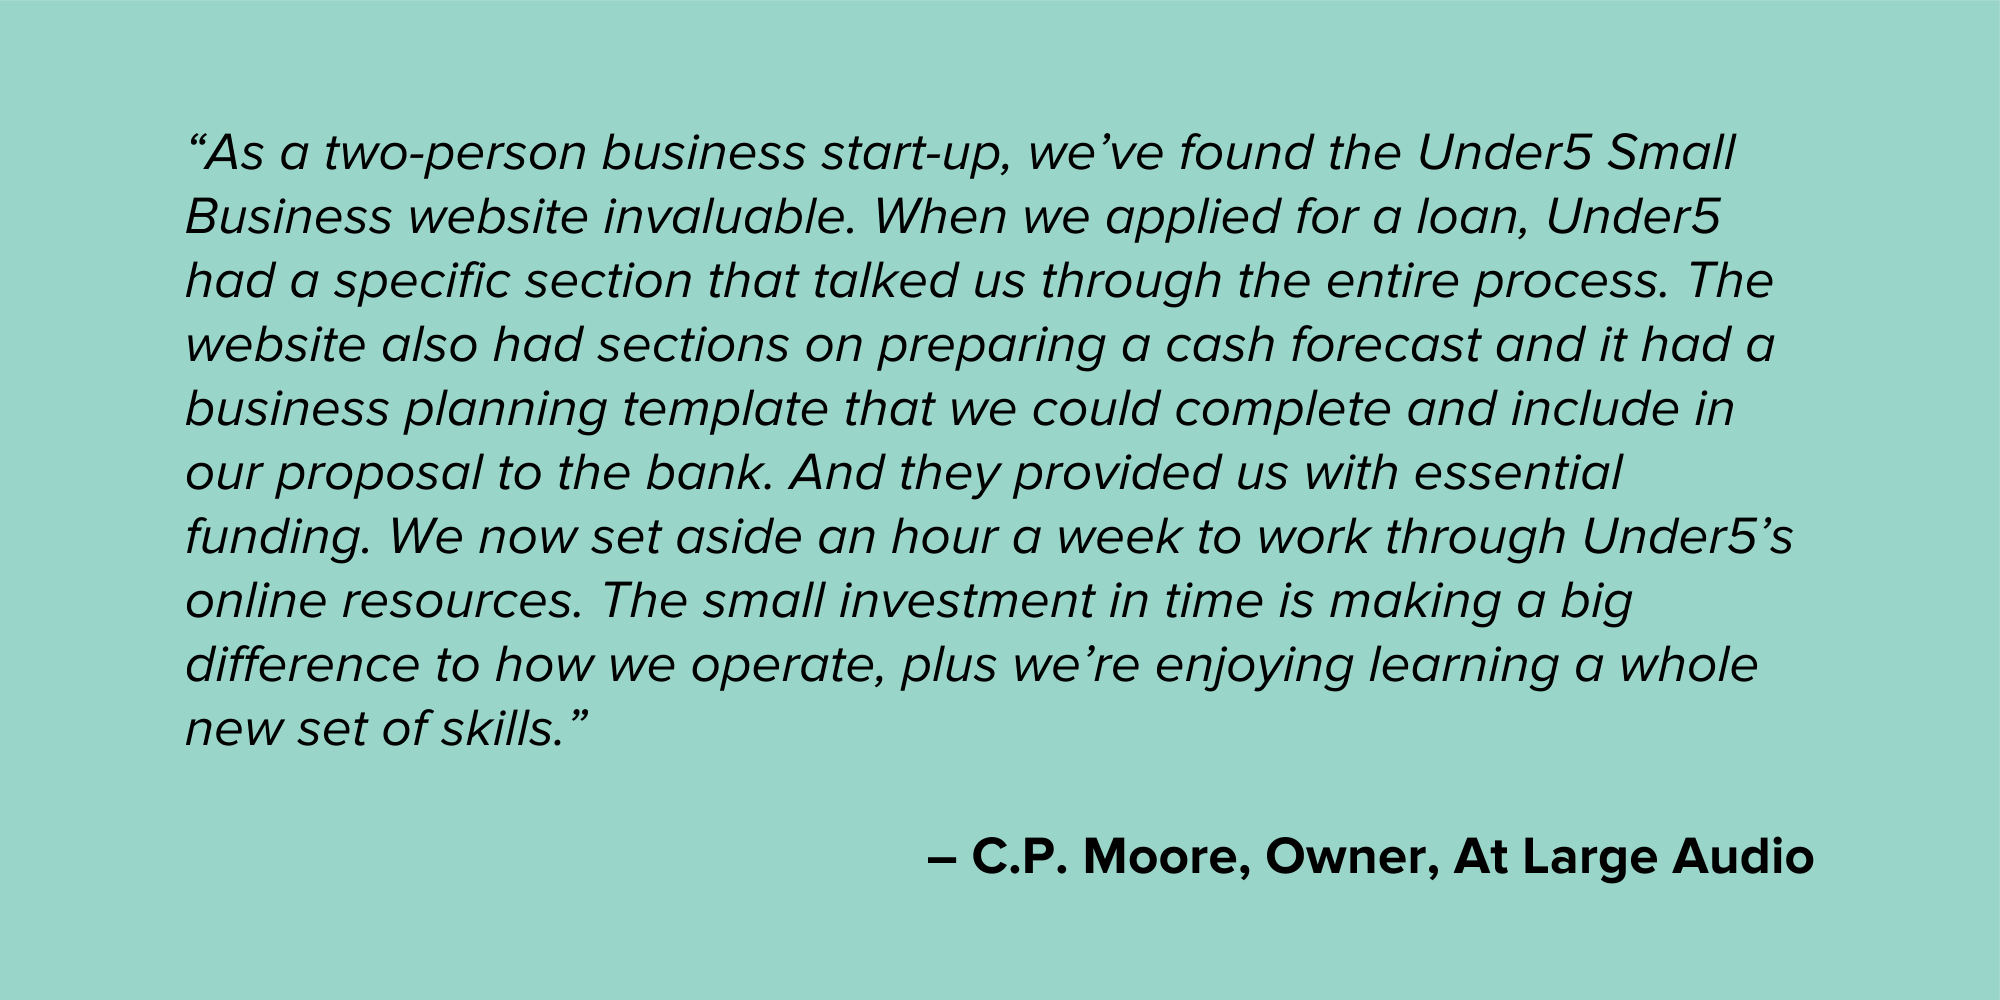 C.P. Moore Micro Business Testimonial Quote